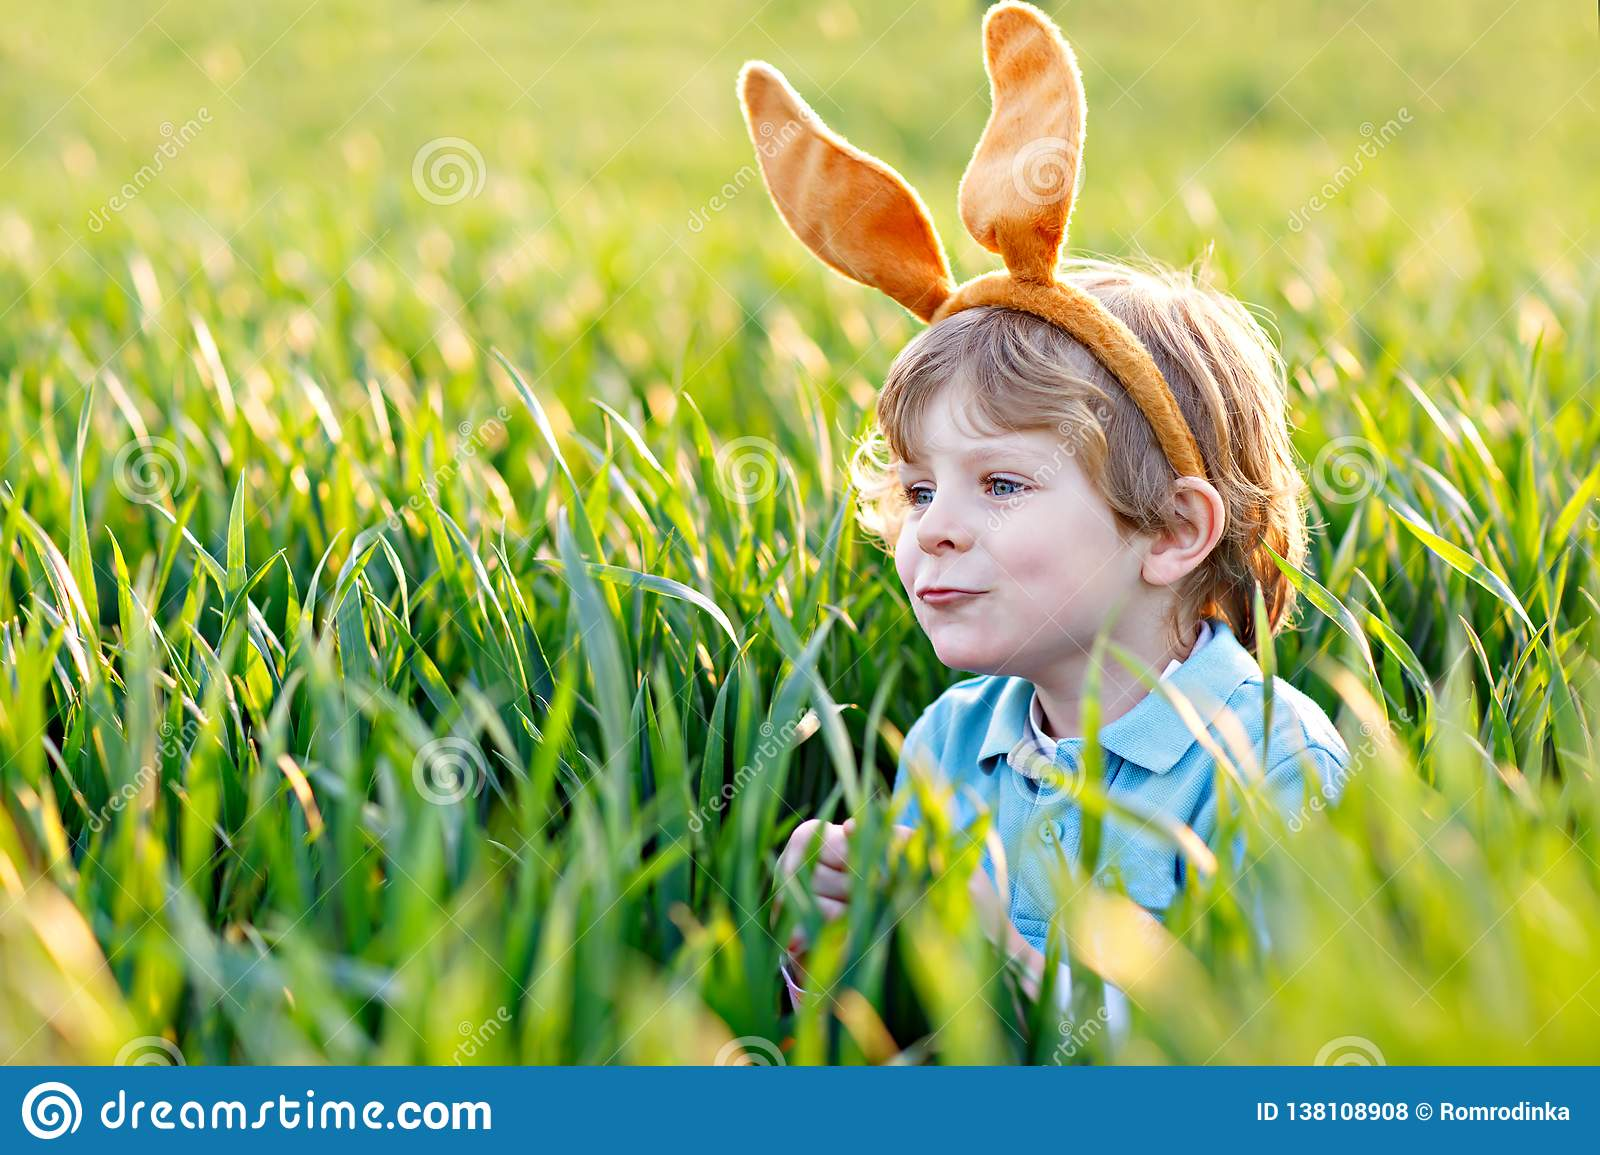 Cute little kid boy with bunny ears having fun with traditional Easter eggs hunt on warm sunny day, outdoors